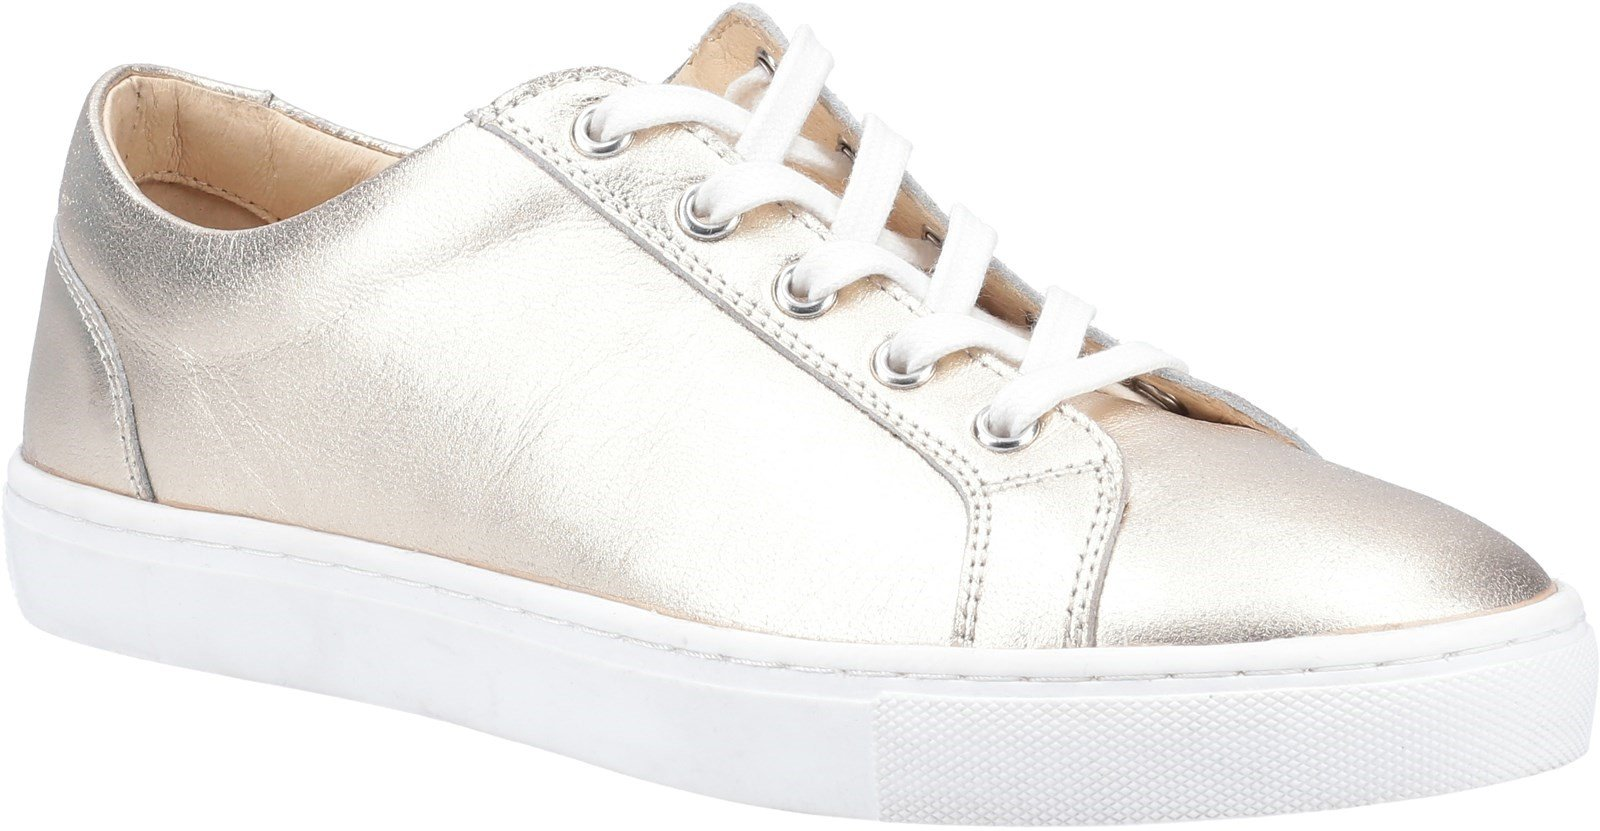 Hush Puppies Women's Tessa Lace Trainer Various Colours 31961 - Gold 8